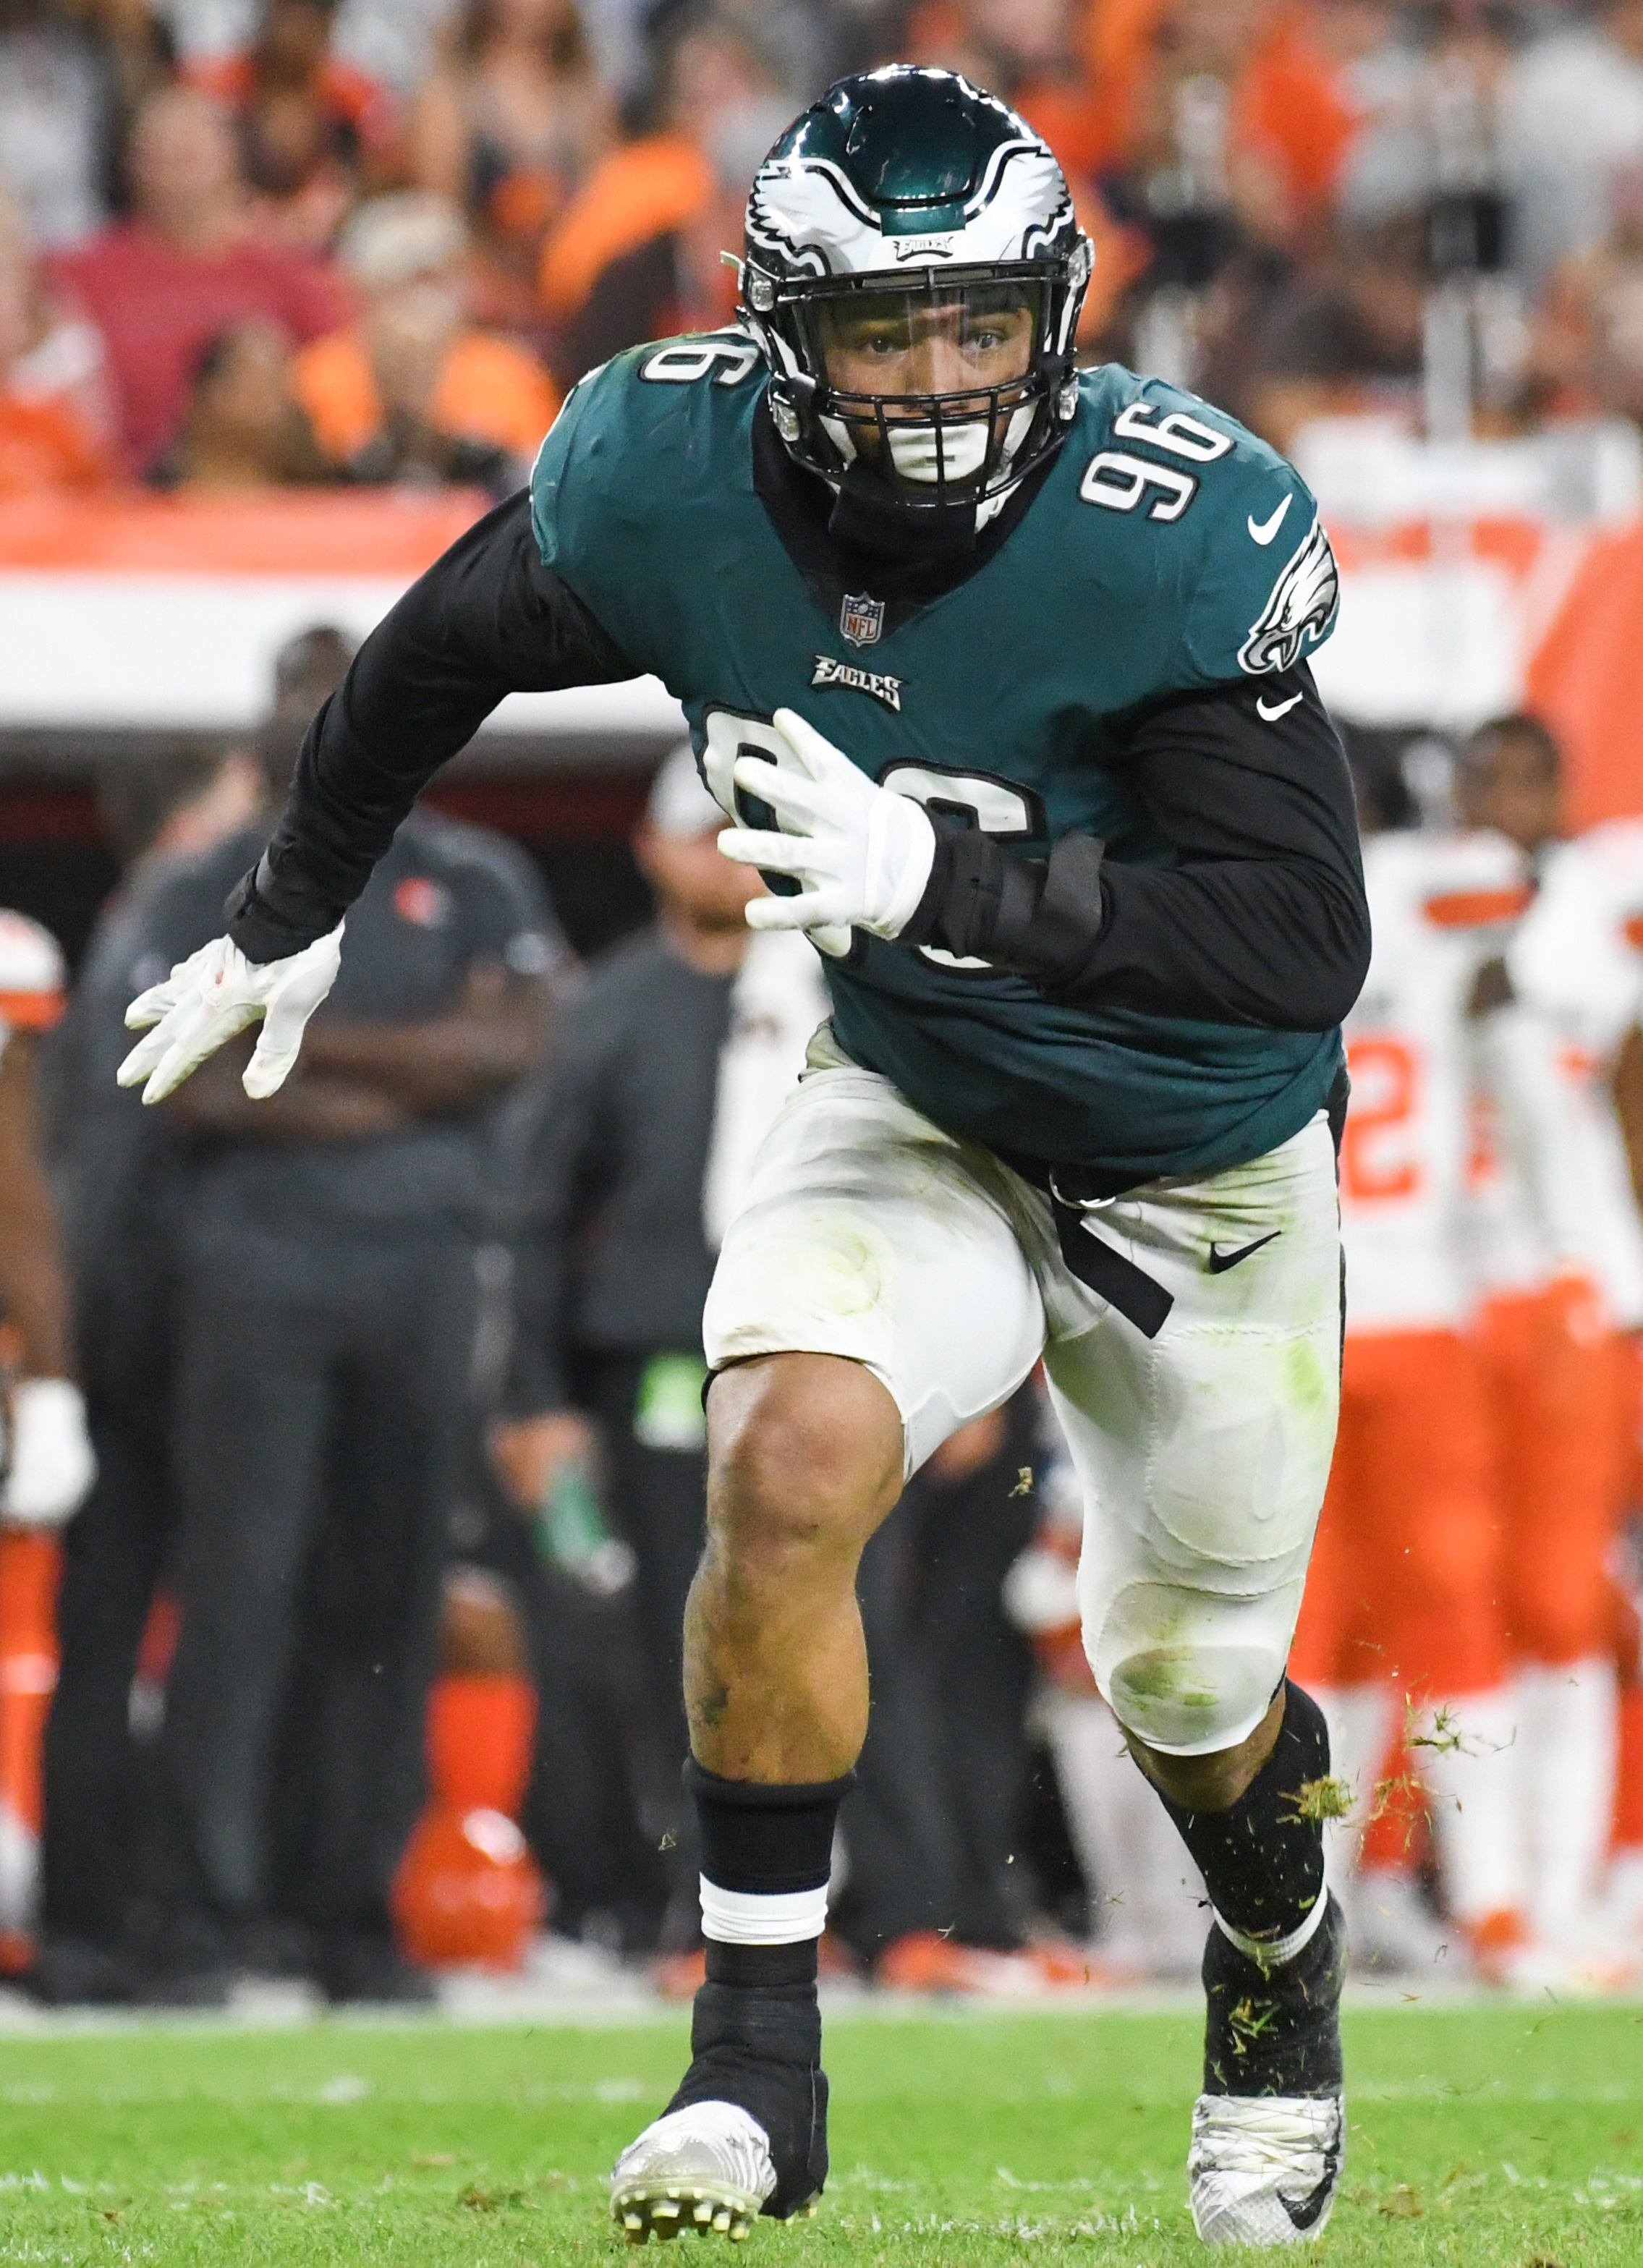 Let's try this again: THIS will be Derek Barnett's breakout season with the Eagles